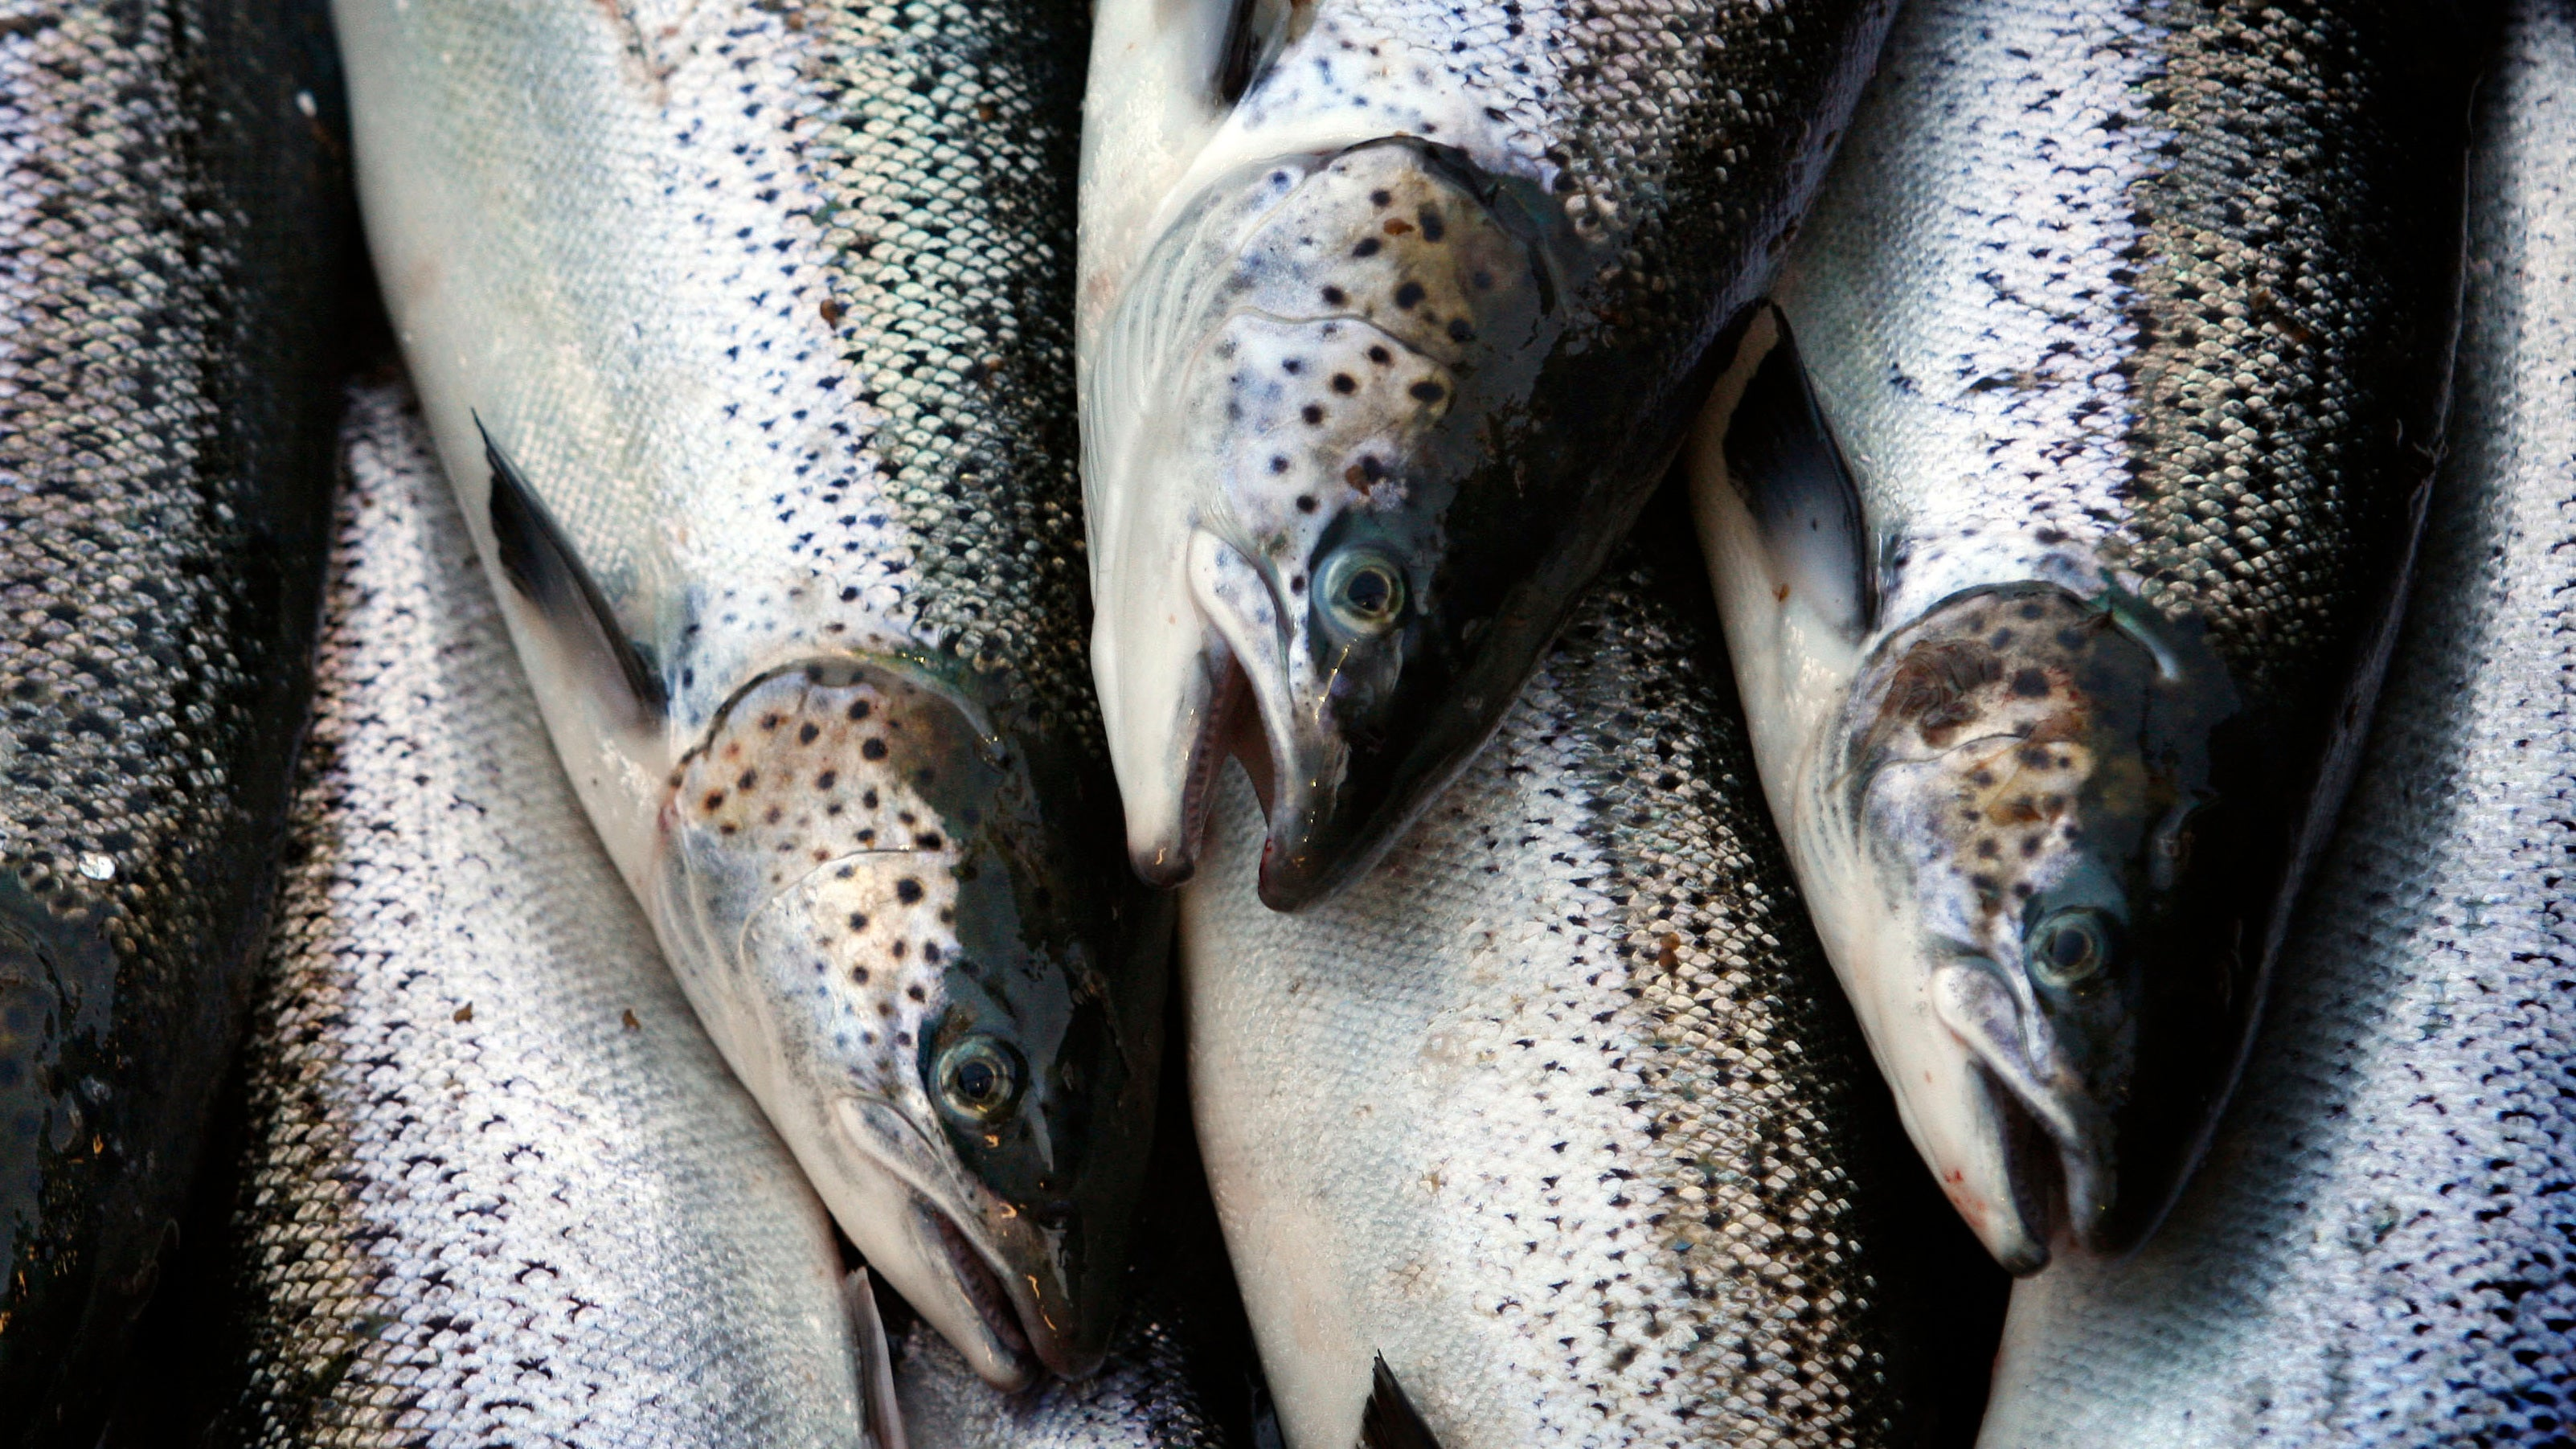 Import Ban On Genetically Modified Salmon In U.S. Lifted